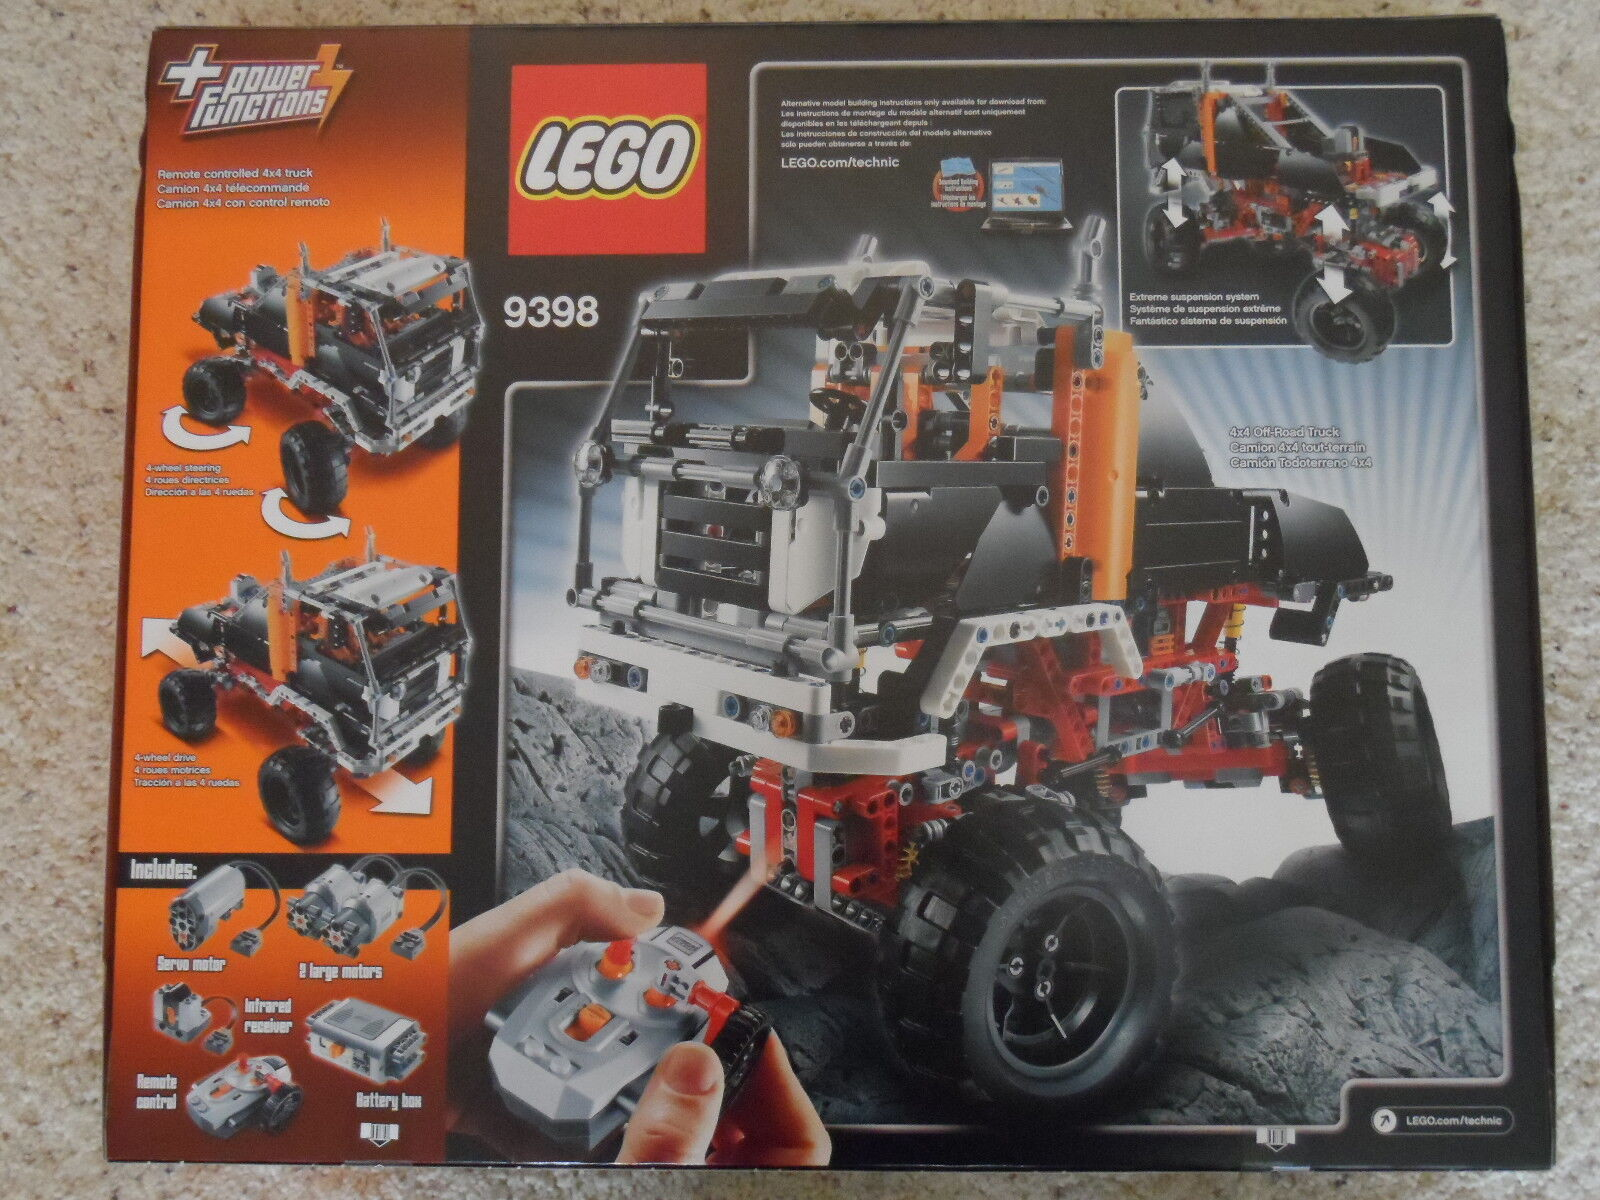 BRAND NEW and FACTORY FACTORY FACTORY SEALED LEGO TECHNIC SET 9398 CRAWLER 3073c7